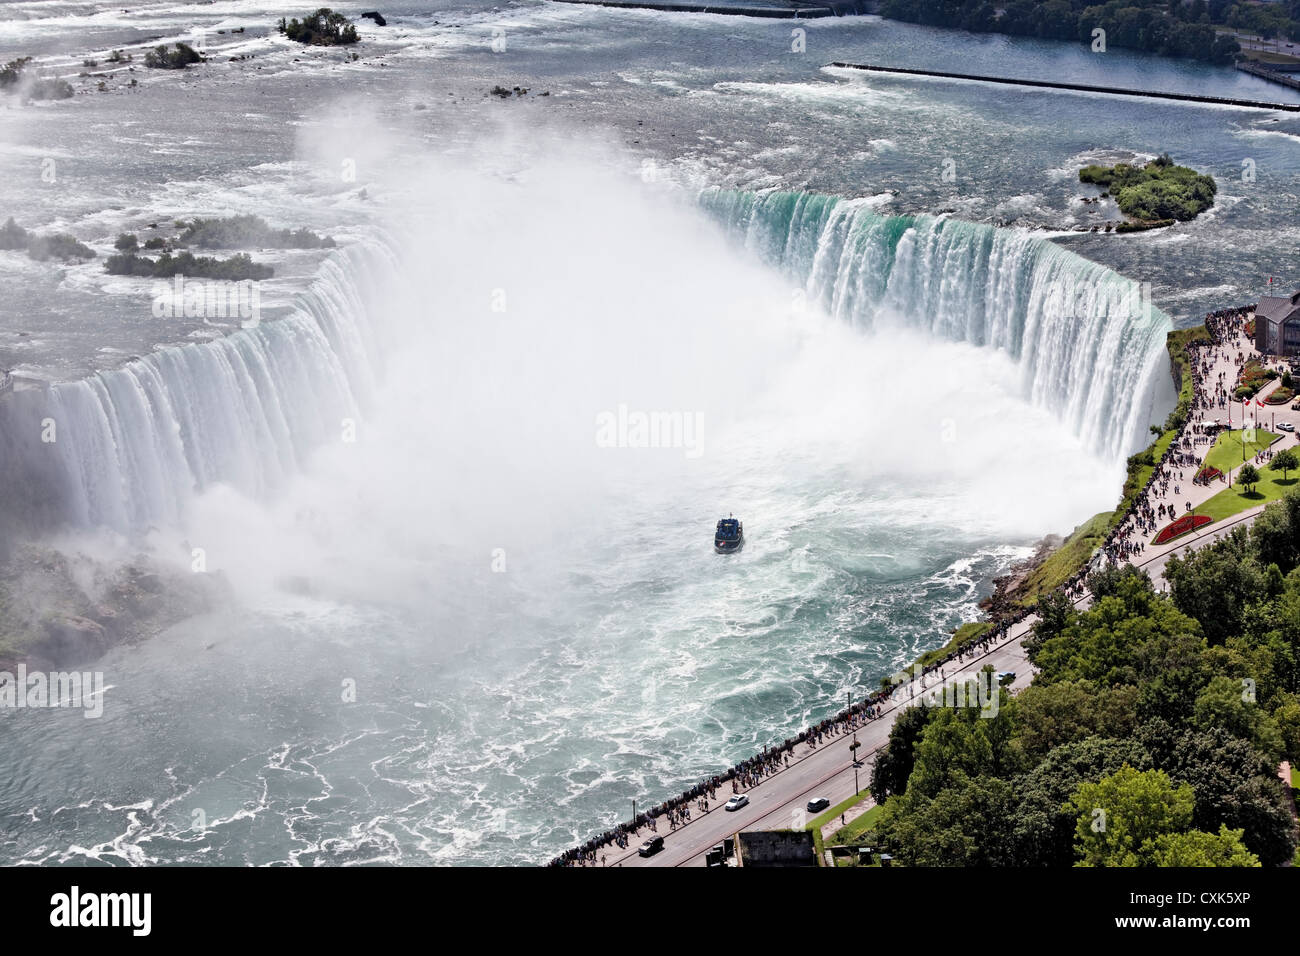 The Horseshoe Falls at Niagara Falls, Ontario, Canada - Stock Image